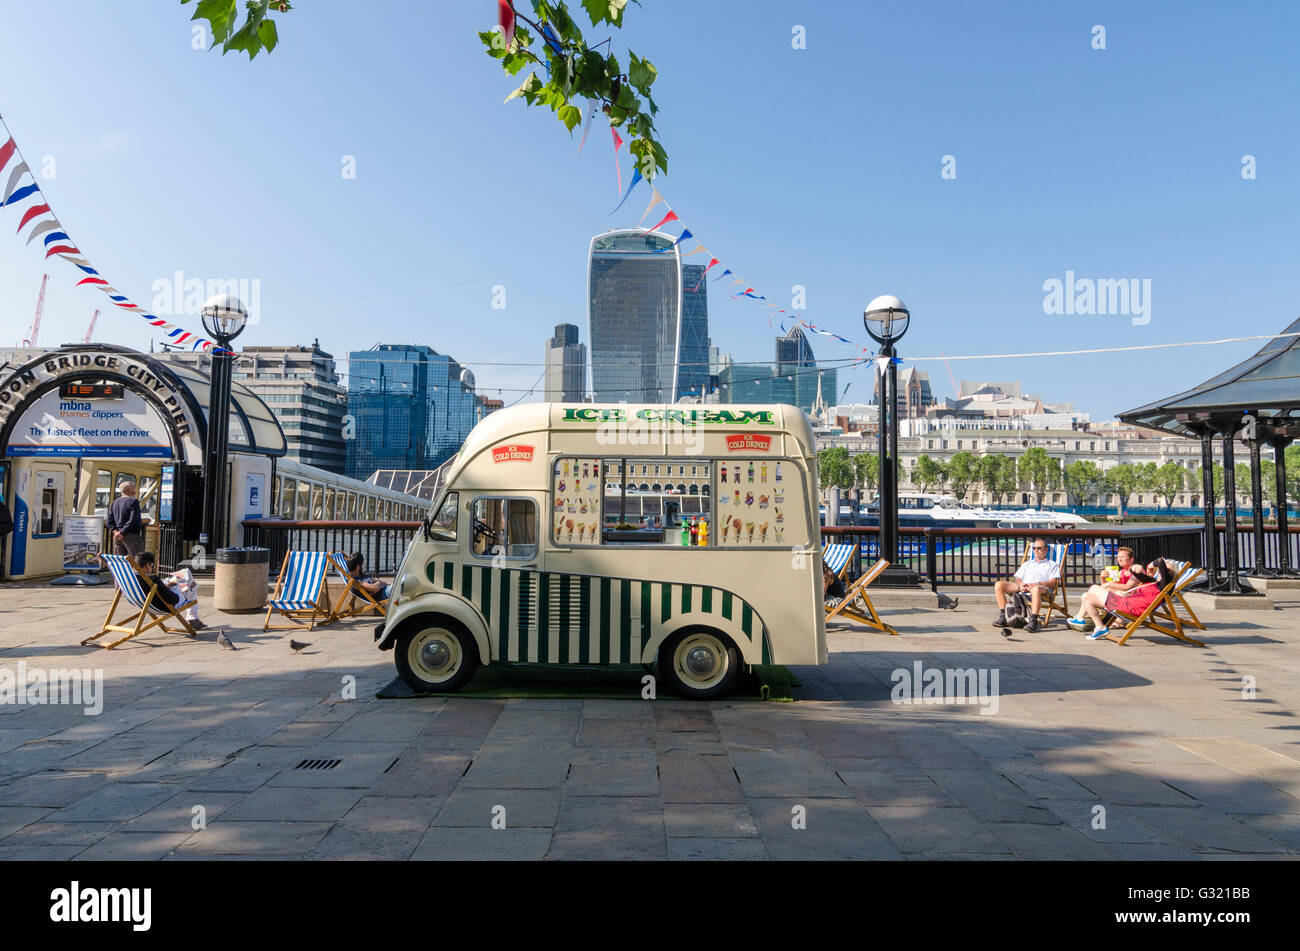 London, UK. 06th June, 2016. People enjoy the hot weather with an ice cream on the south bank in London. Credit: - Stock Image